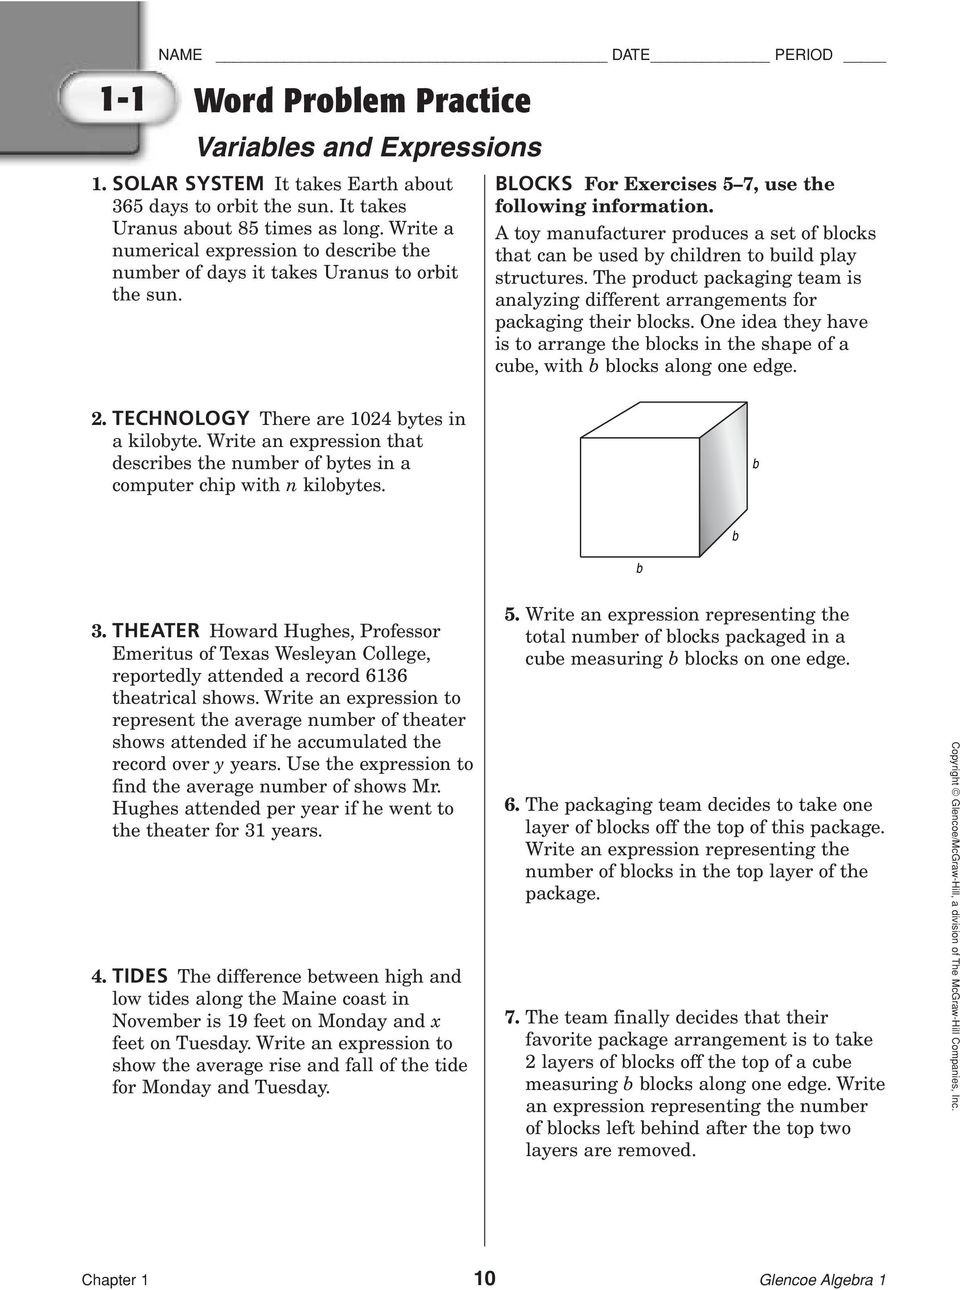 Linear Function Word Problems Worksheet 6 5 Word Problem Practice Applying Systems Linear